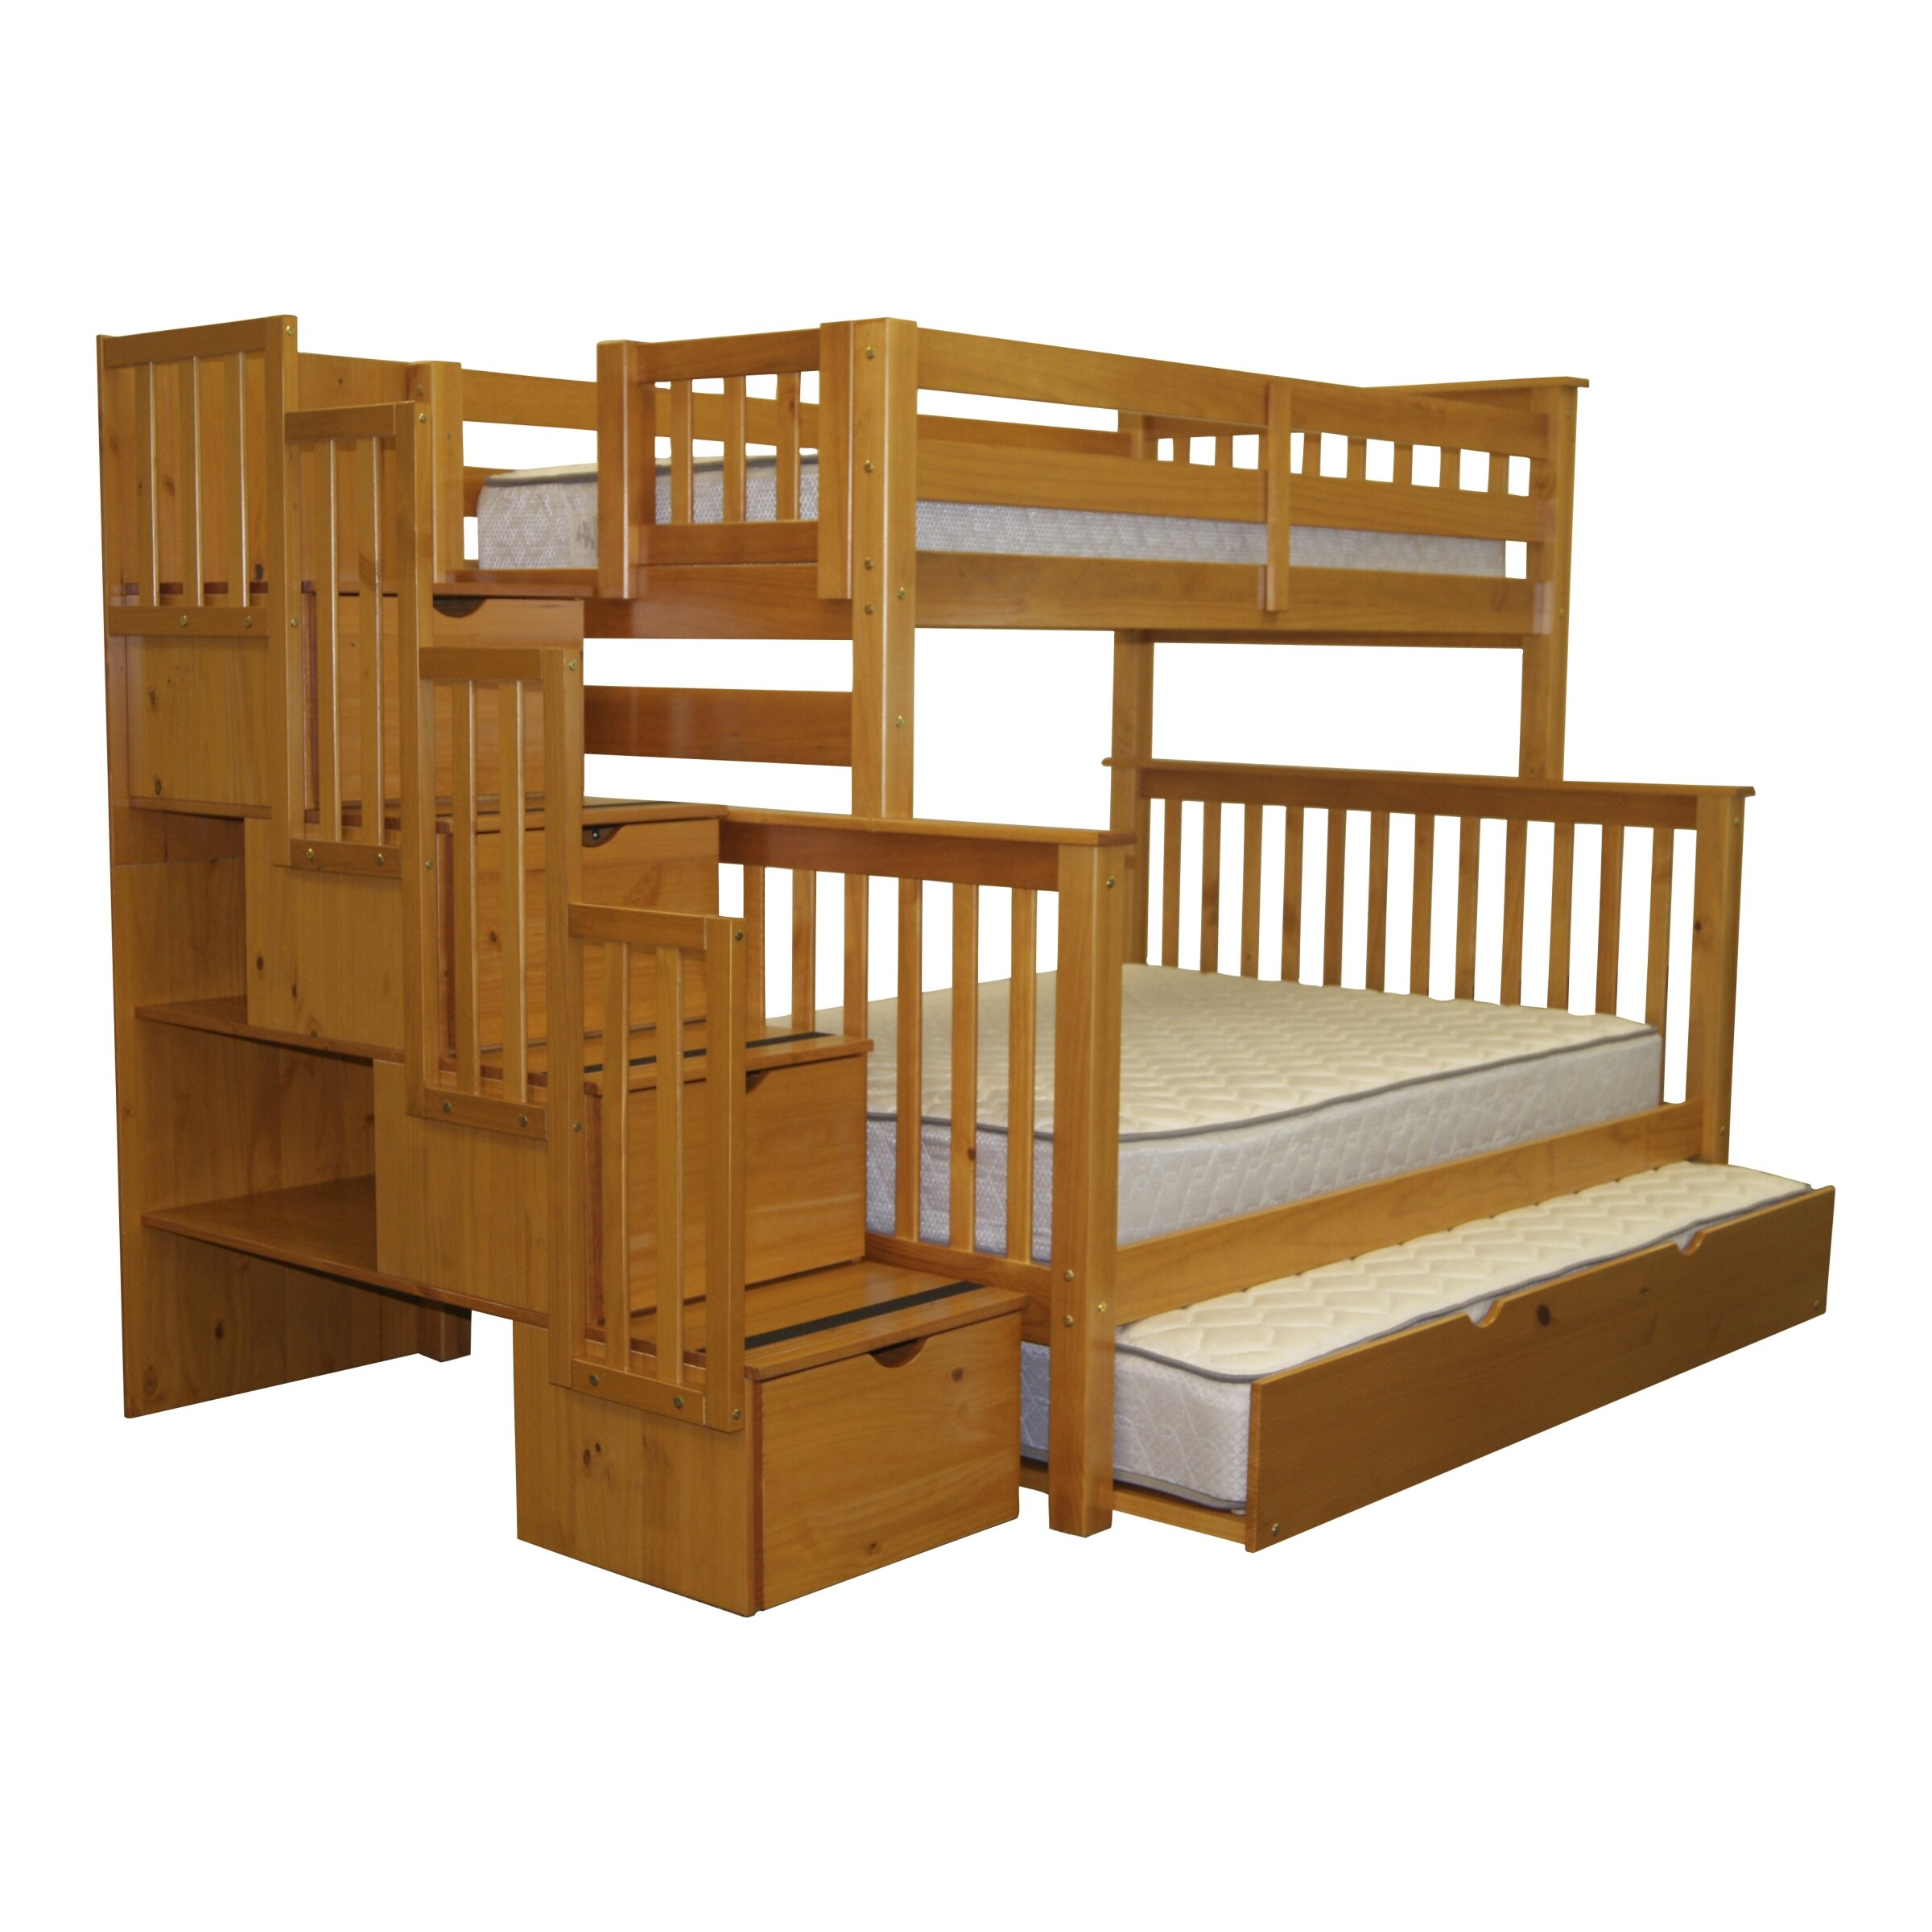 bedz king twin over full bunk bed with storage reviews wayfair. Black Bedroom Furniture Sets. Home Design Ideas